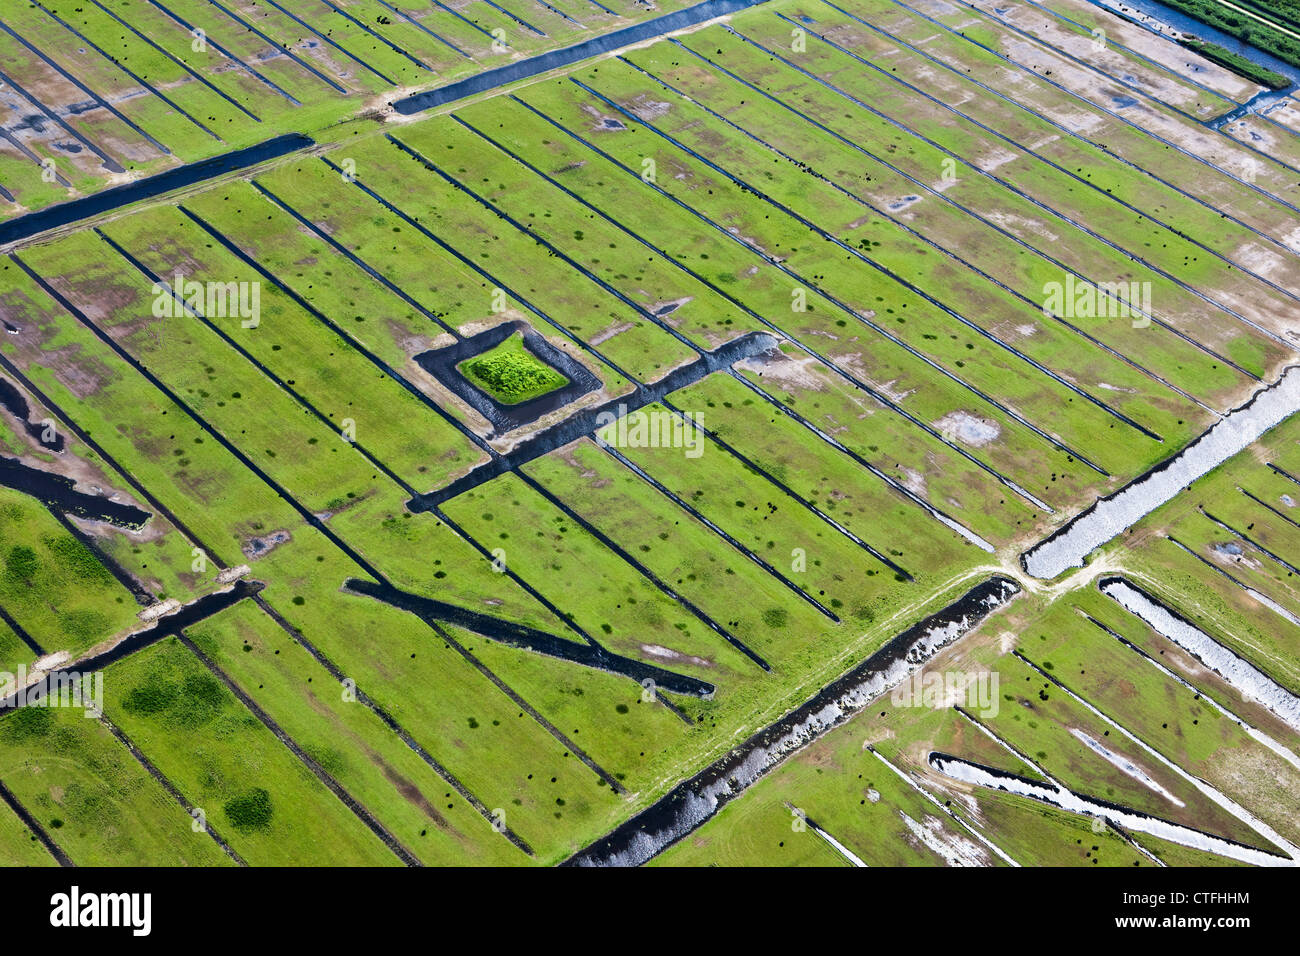 The Netherlands, Almere, Marshland. Aerial. - Stock Image